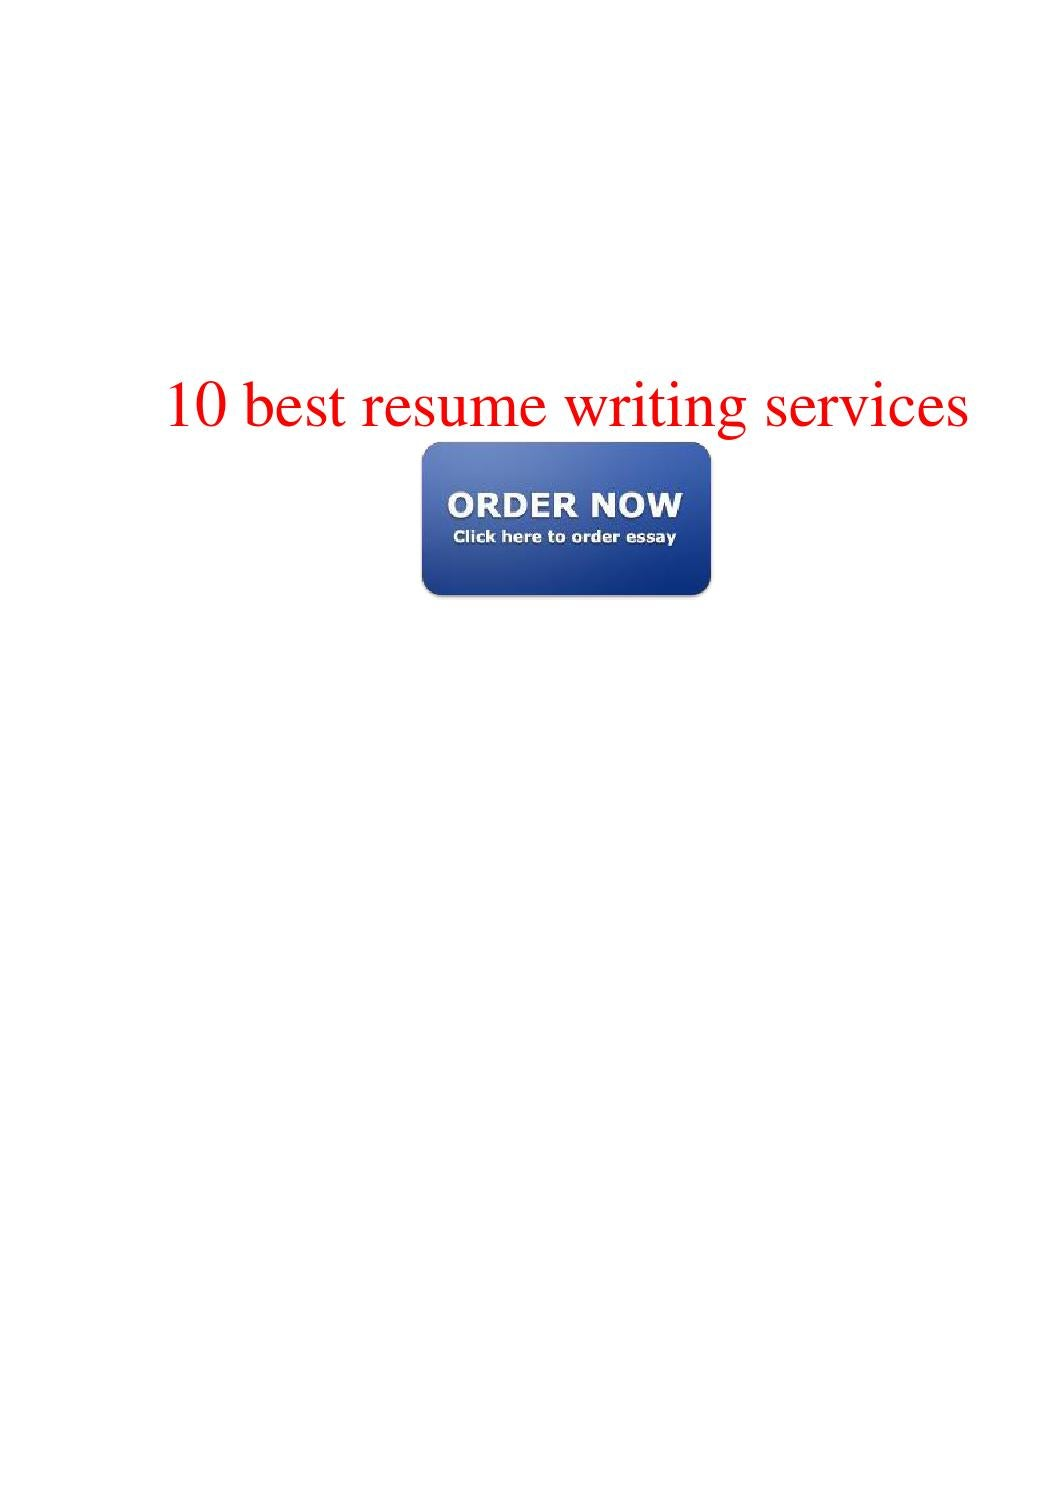 5 Best Resume Writing Services